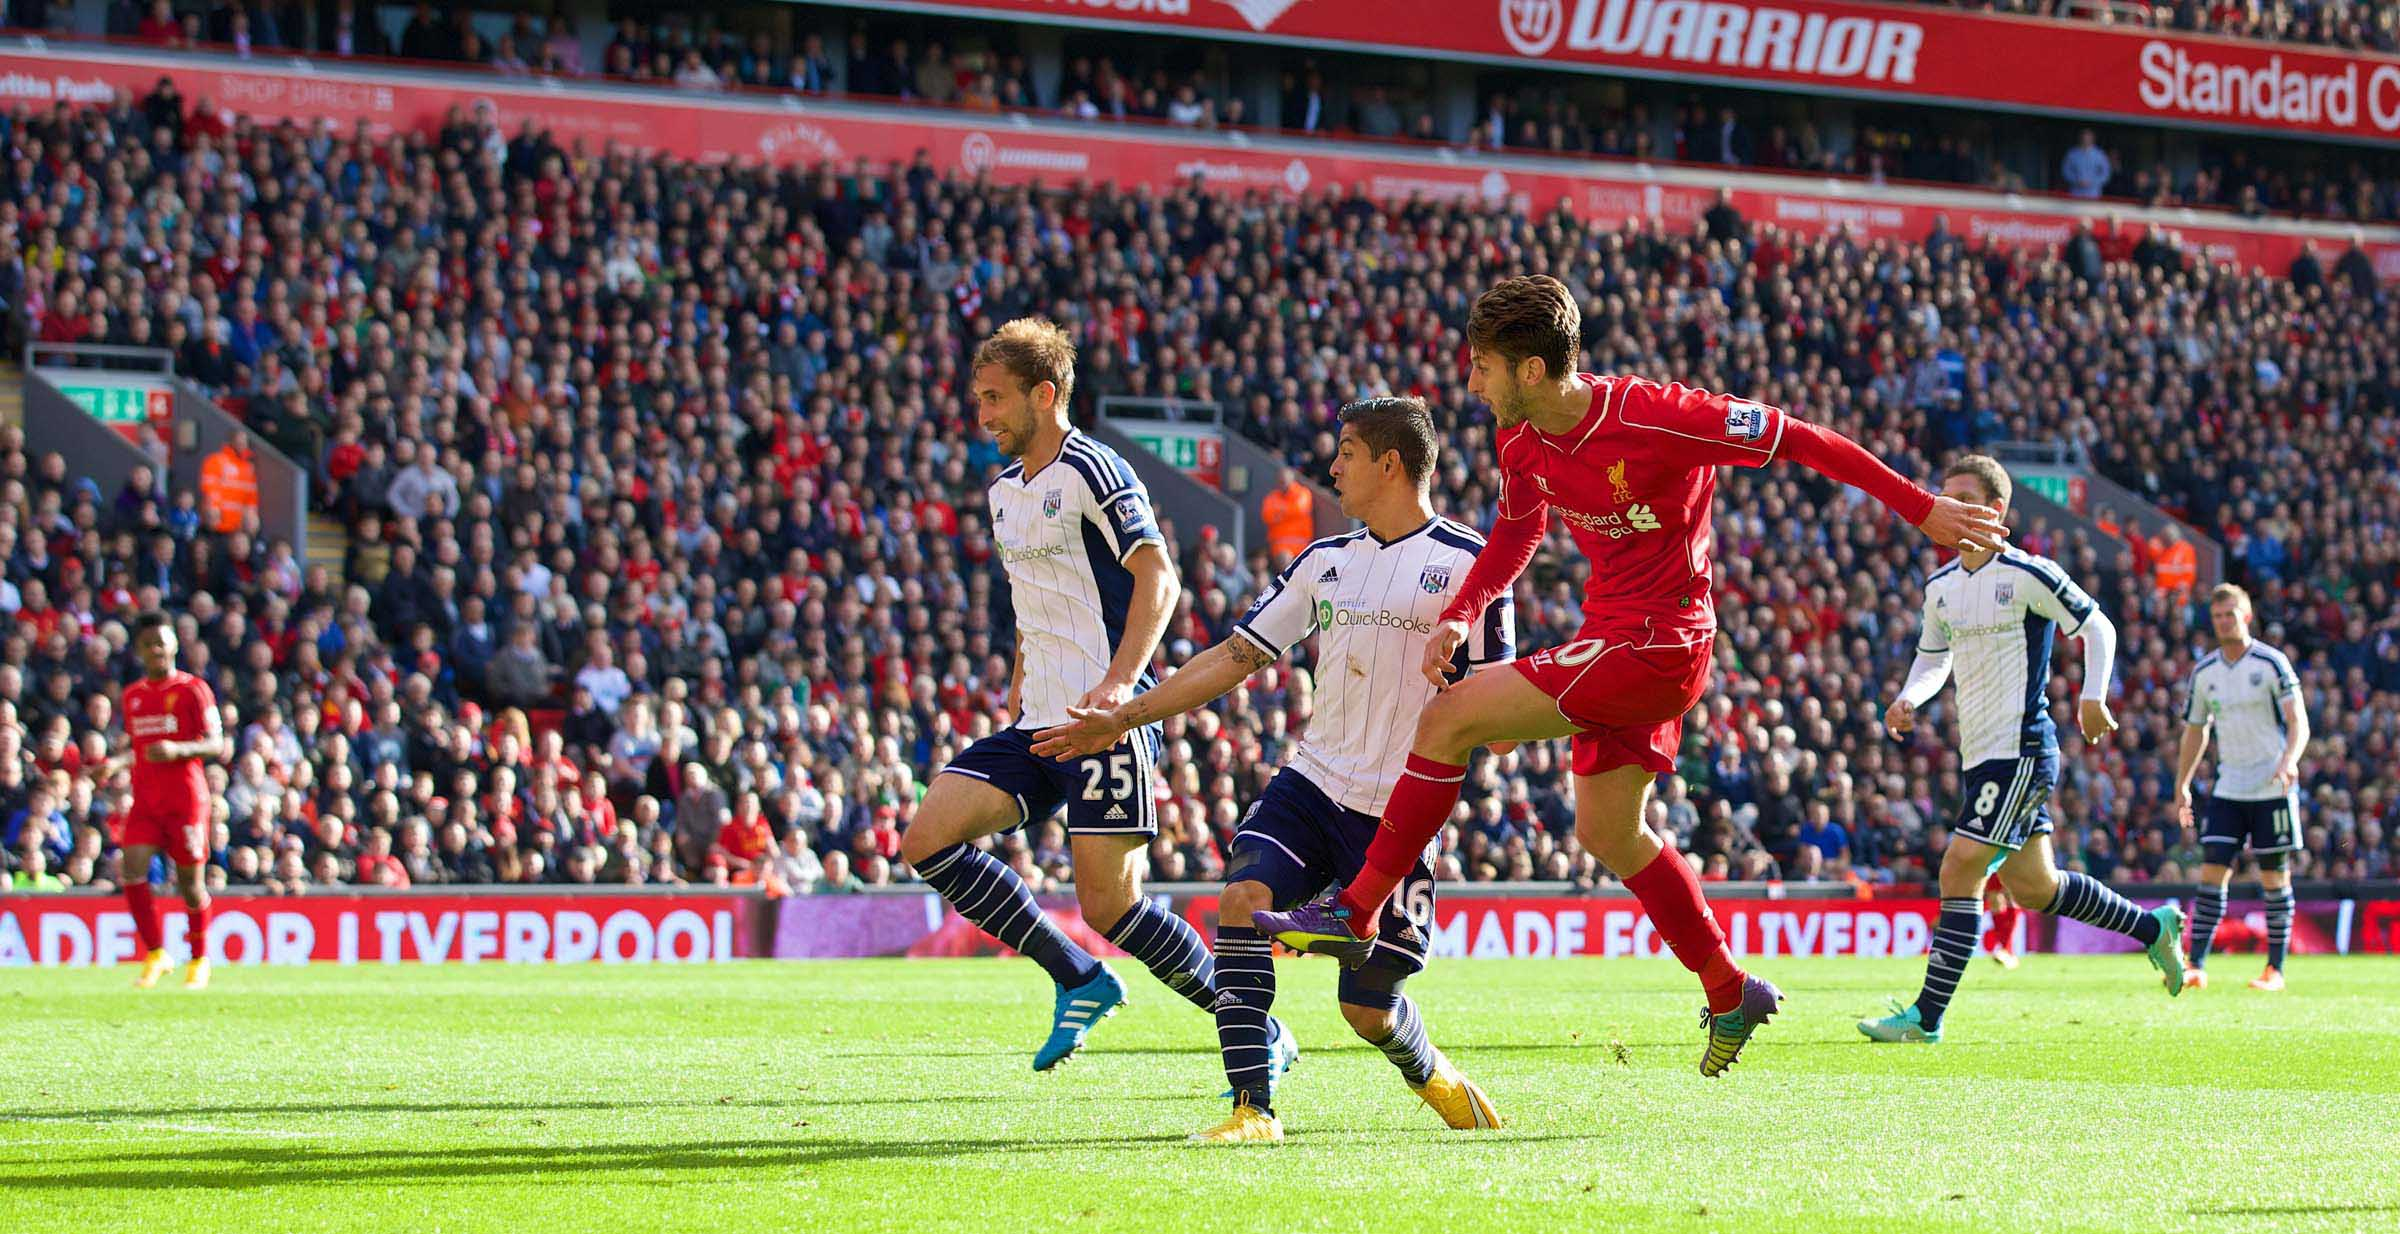 NEIL ATKINSON'S MATCH REVIEW: LIVERPOOL 2 WEST BROM 1